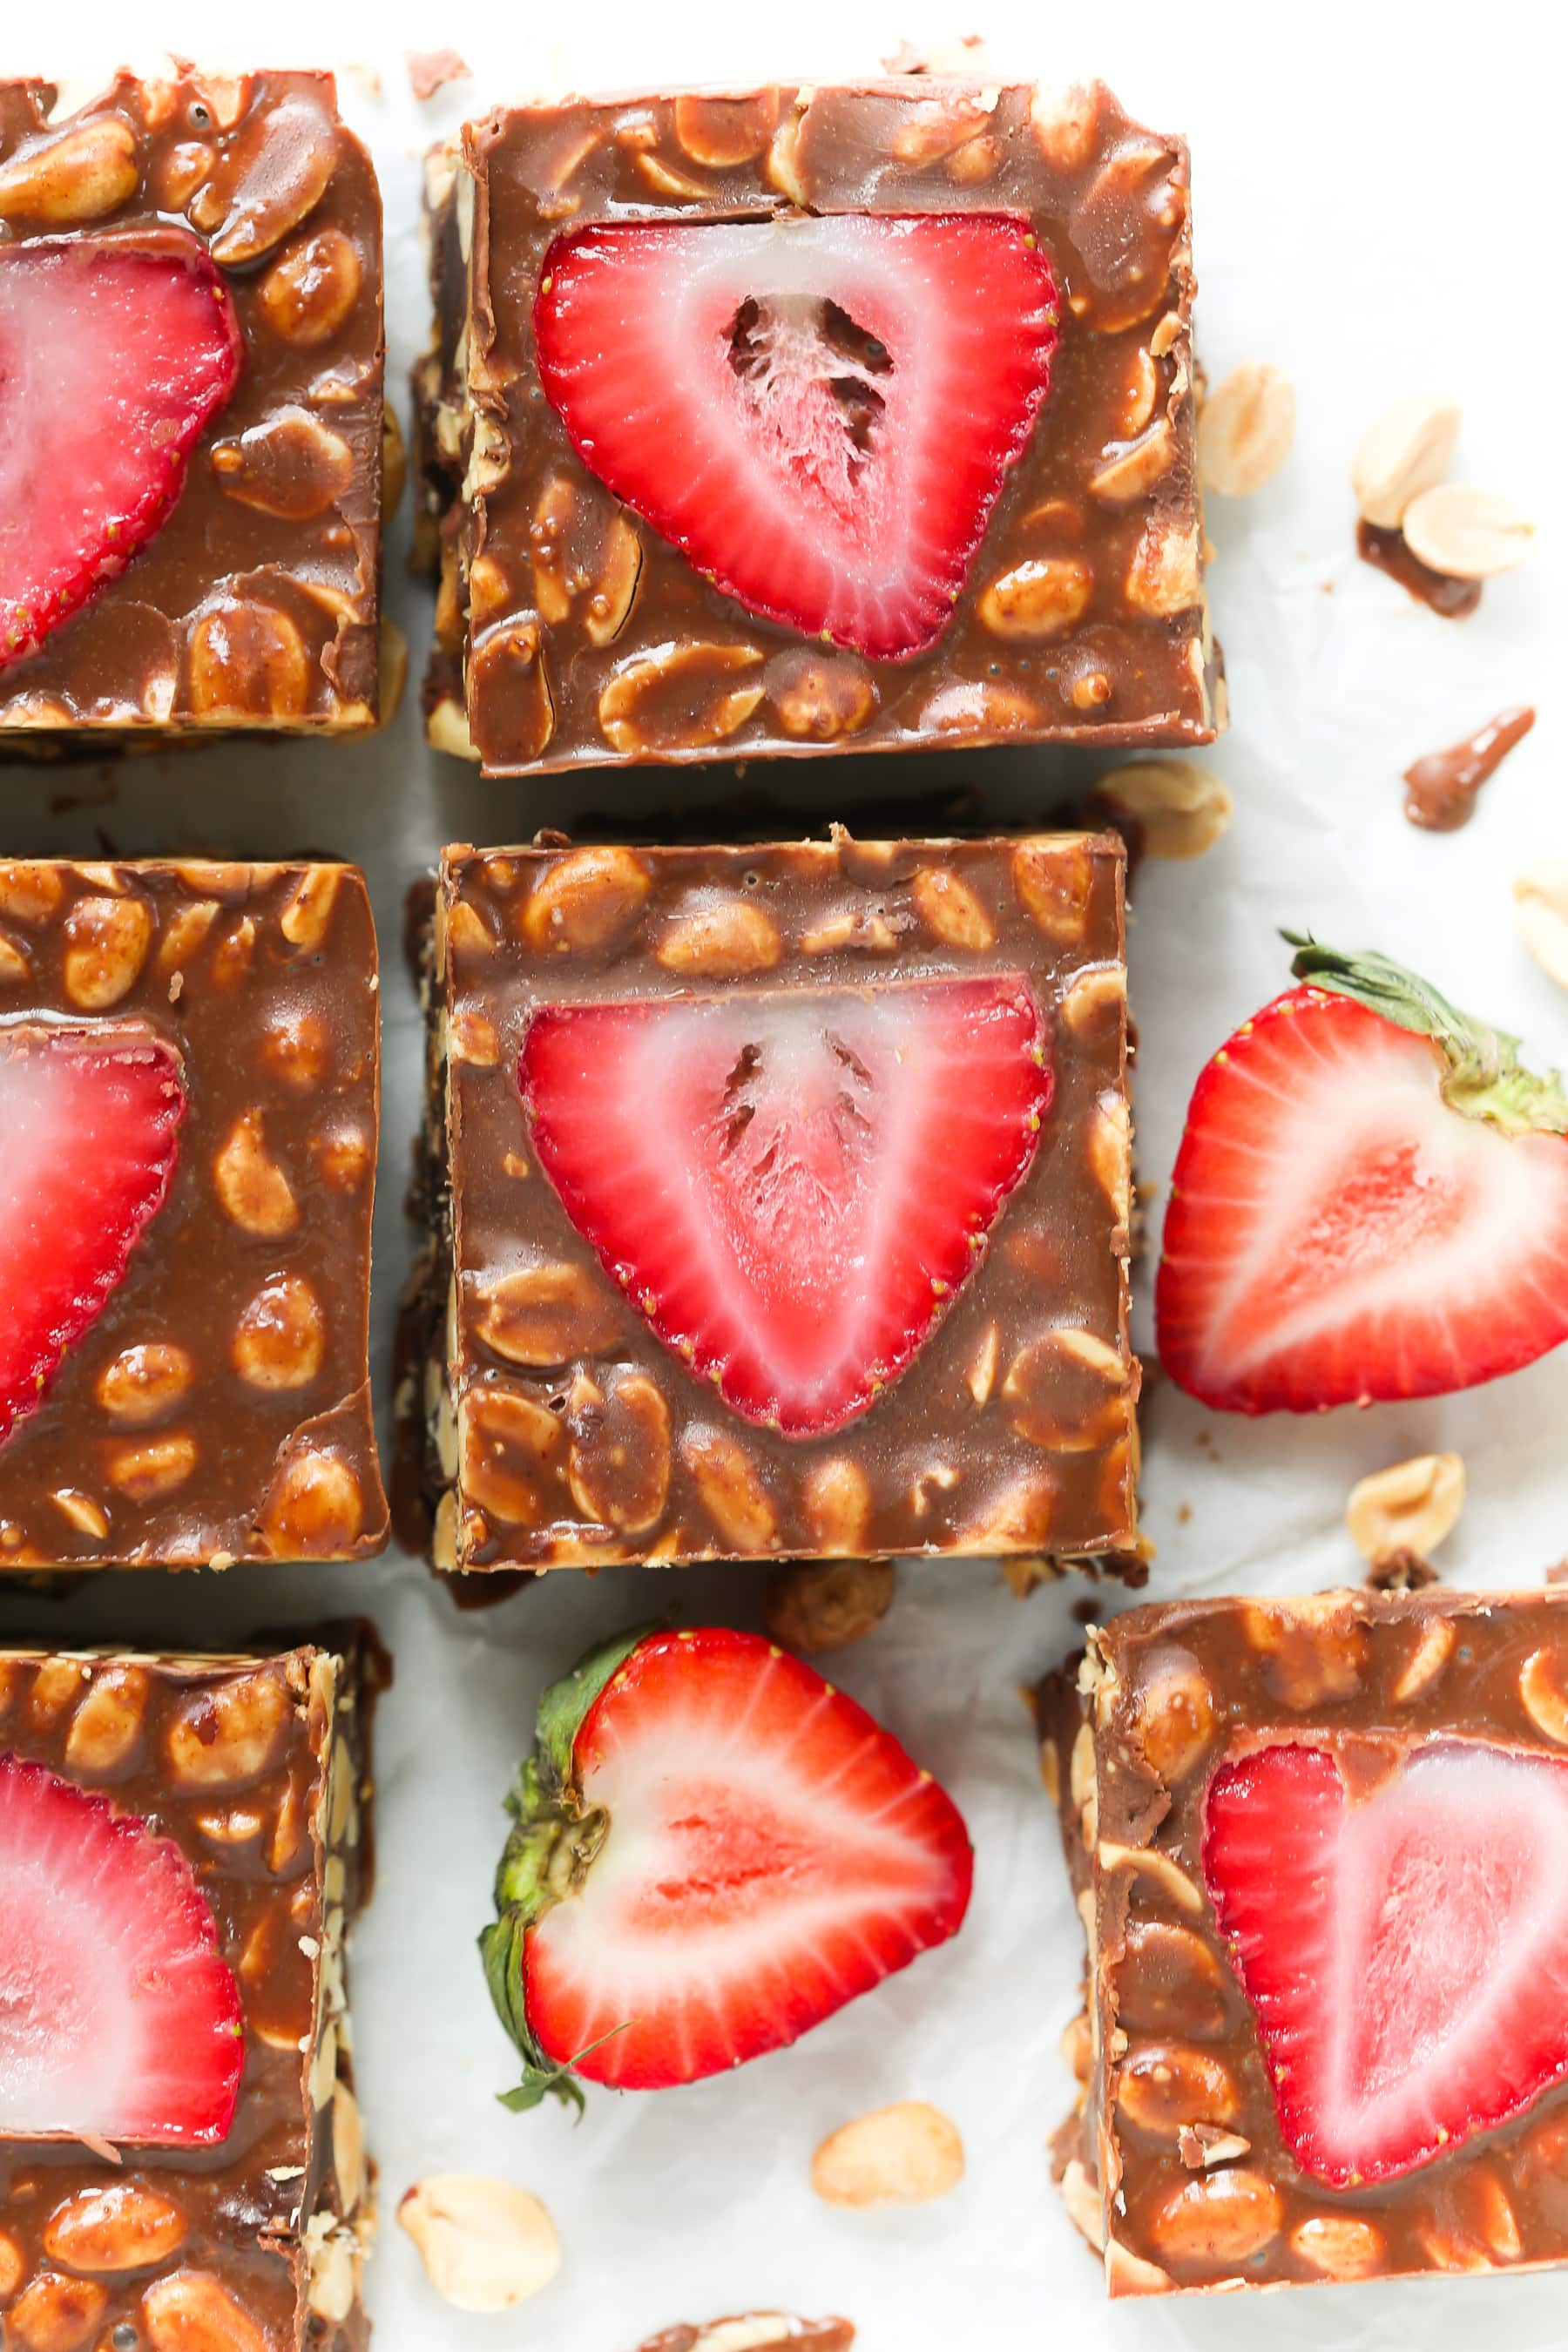 Low-Carb No Bake Chocolate Strawberry Bars - These low-carb no bake chocolate strawberry bars are easy to make, perfect for summer dessert, vegan and gluten-free.